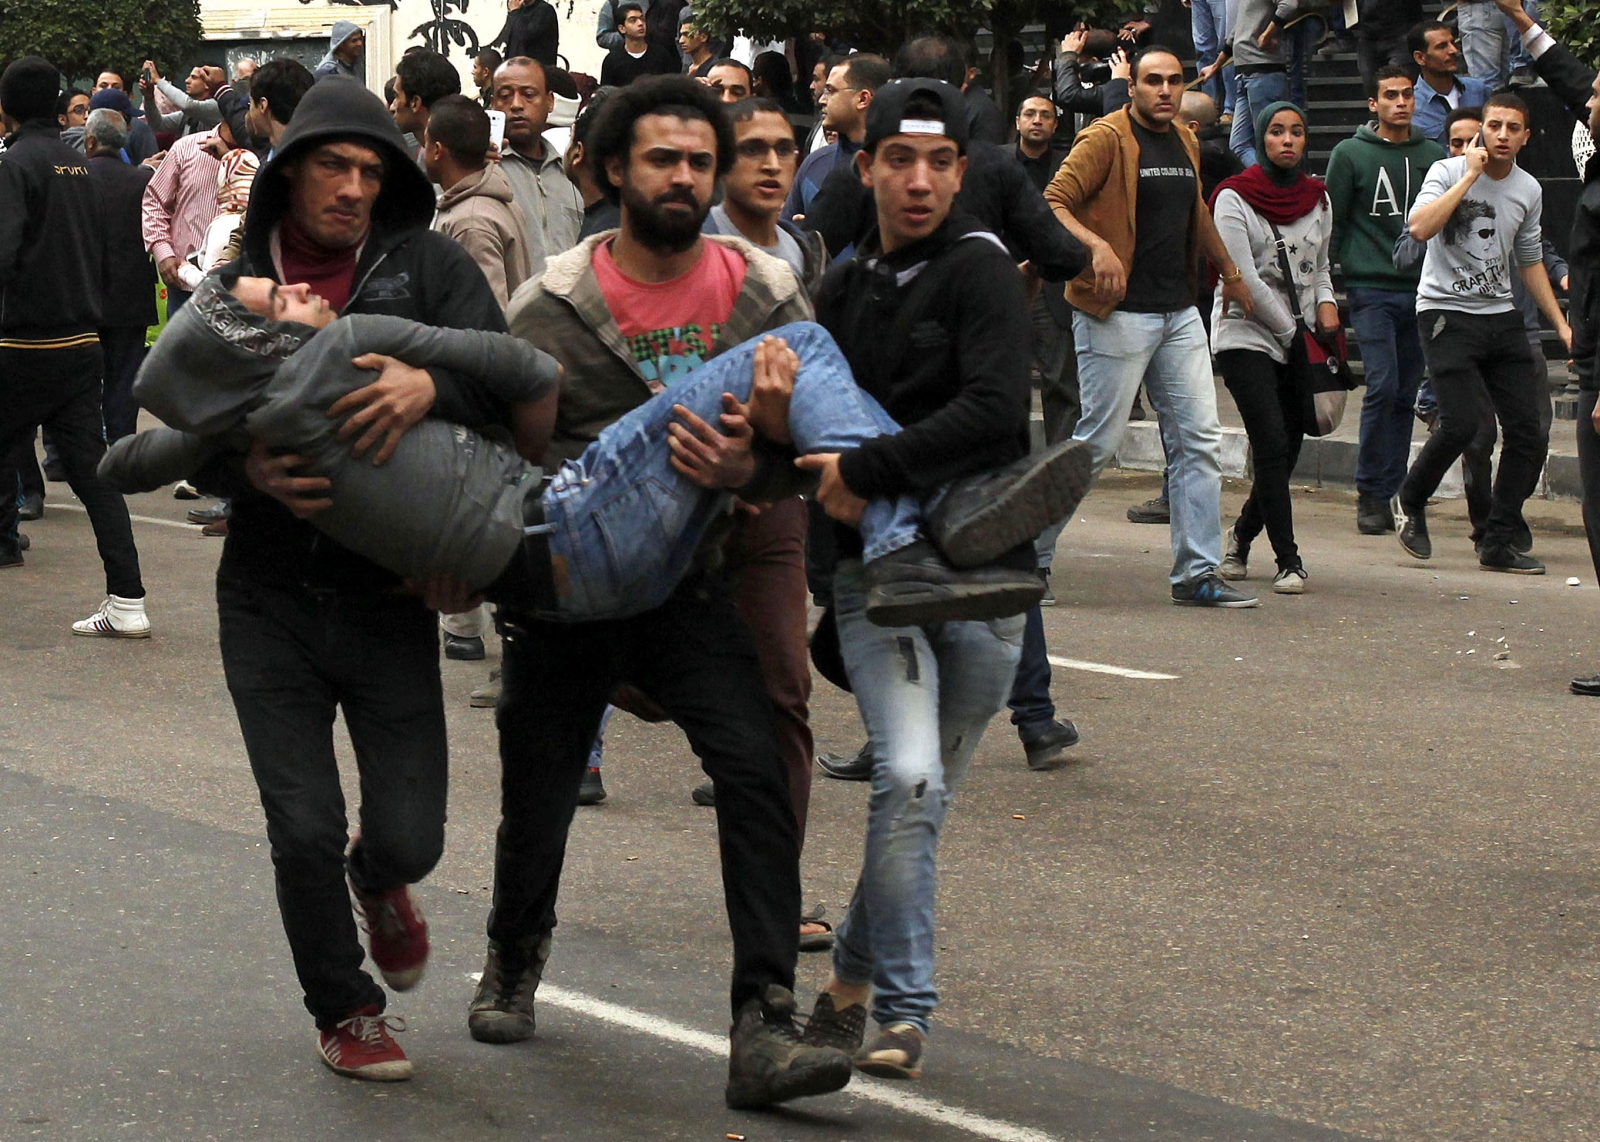 Anti-goverment protesters help an injured demonstrator in Cairo. (Reuters)